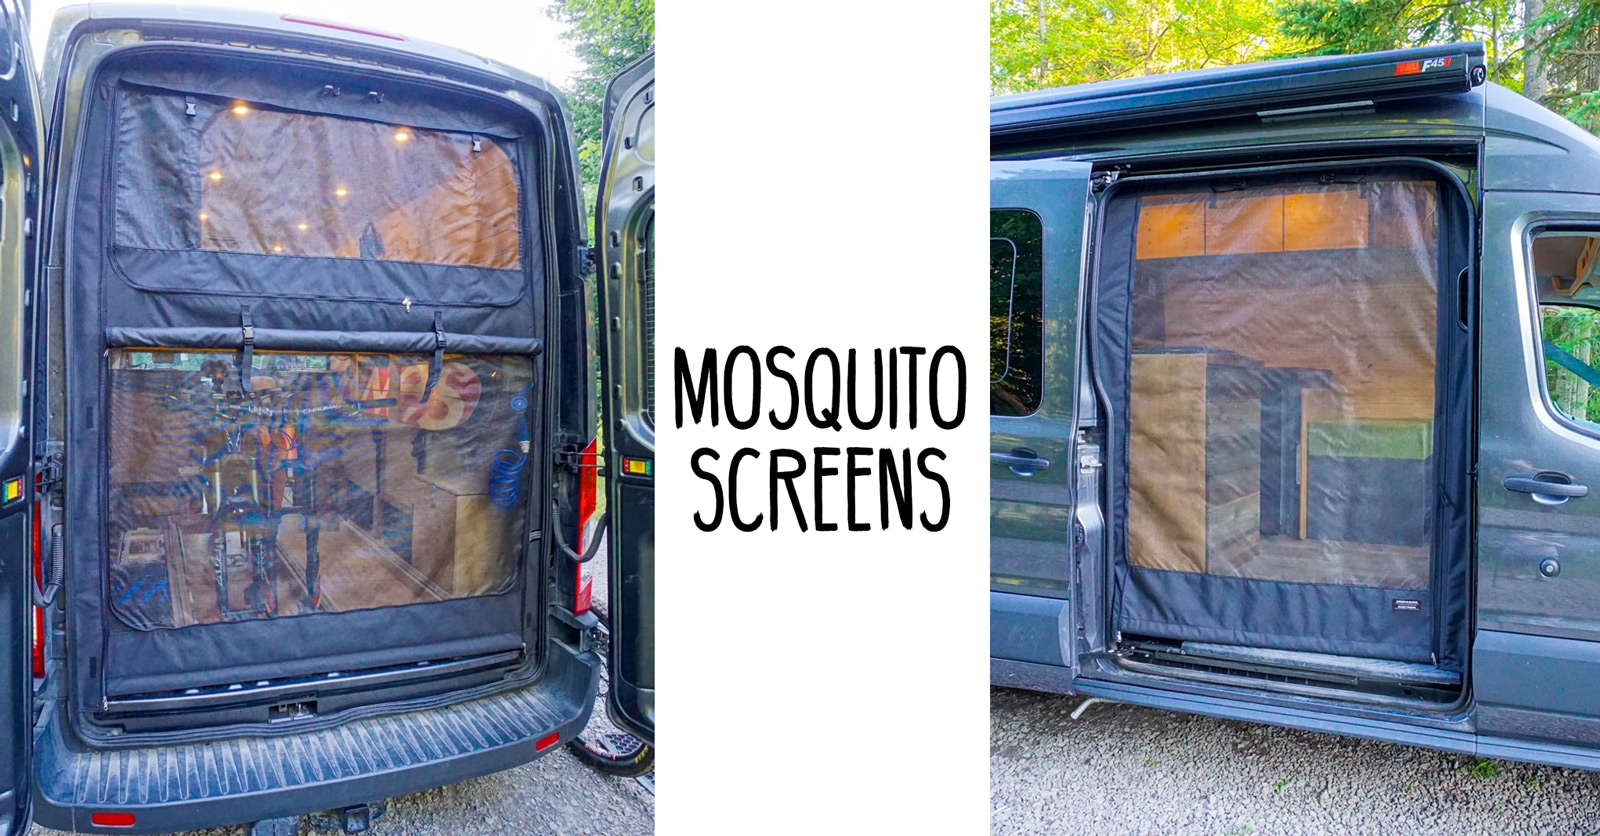 Mosquito-Screens-Ford-Transit-Van-(Heading)